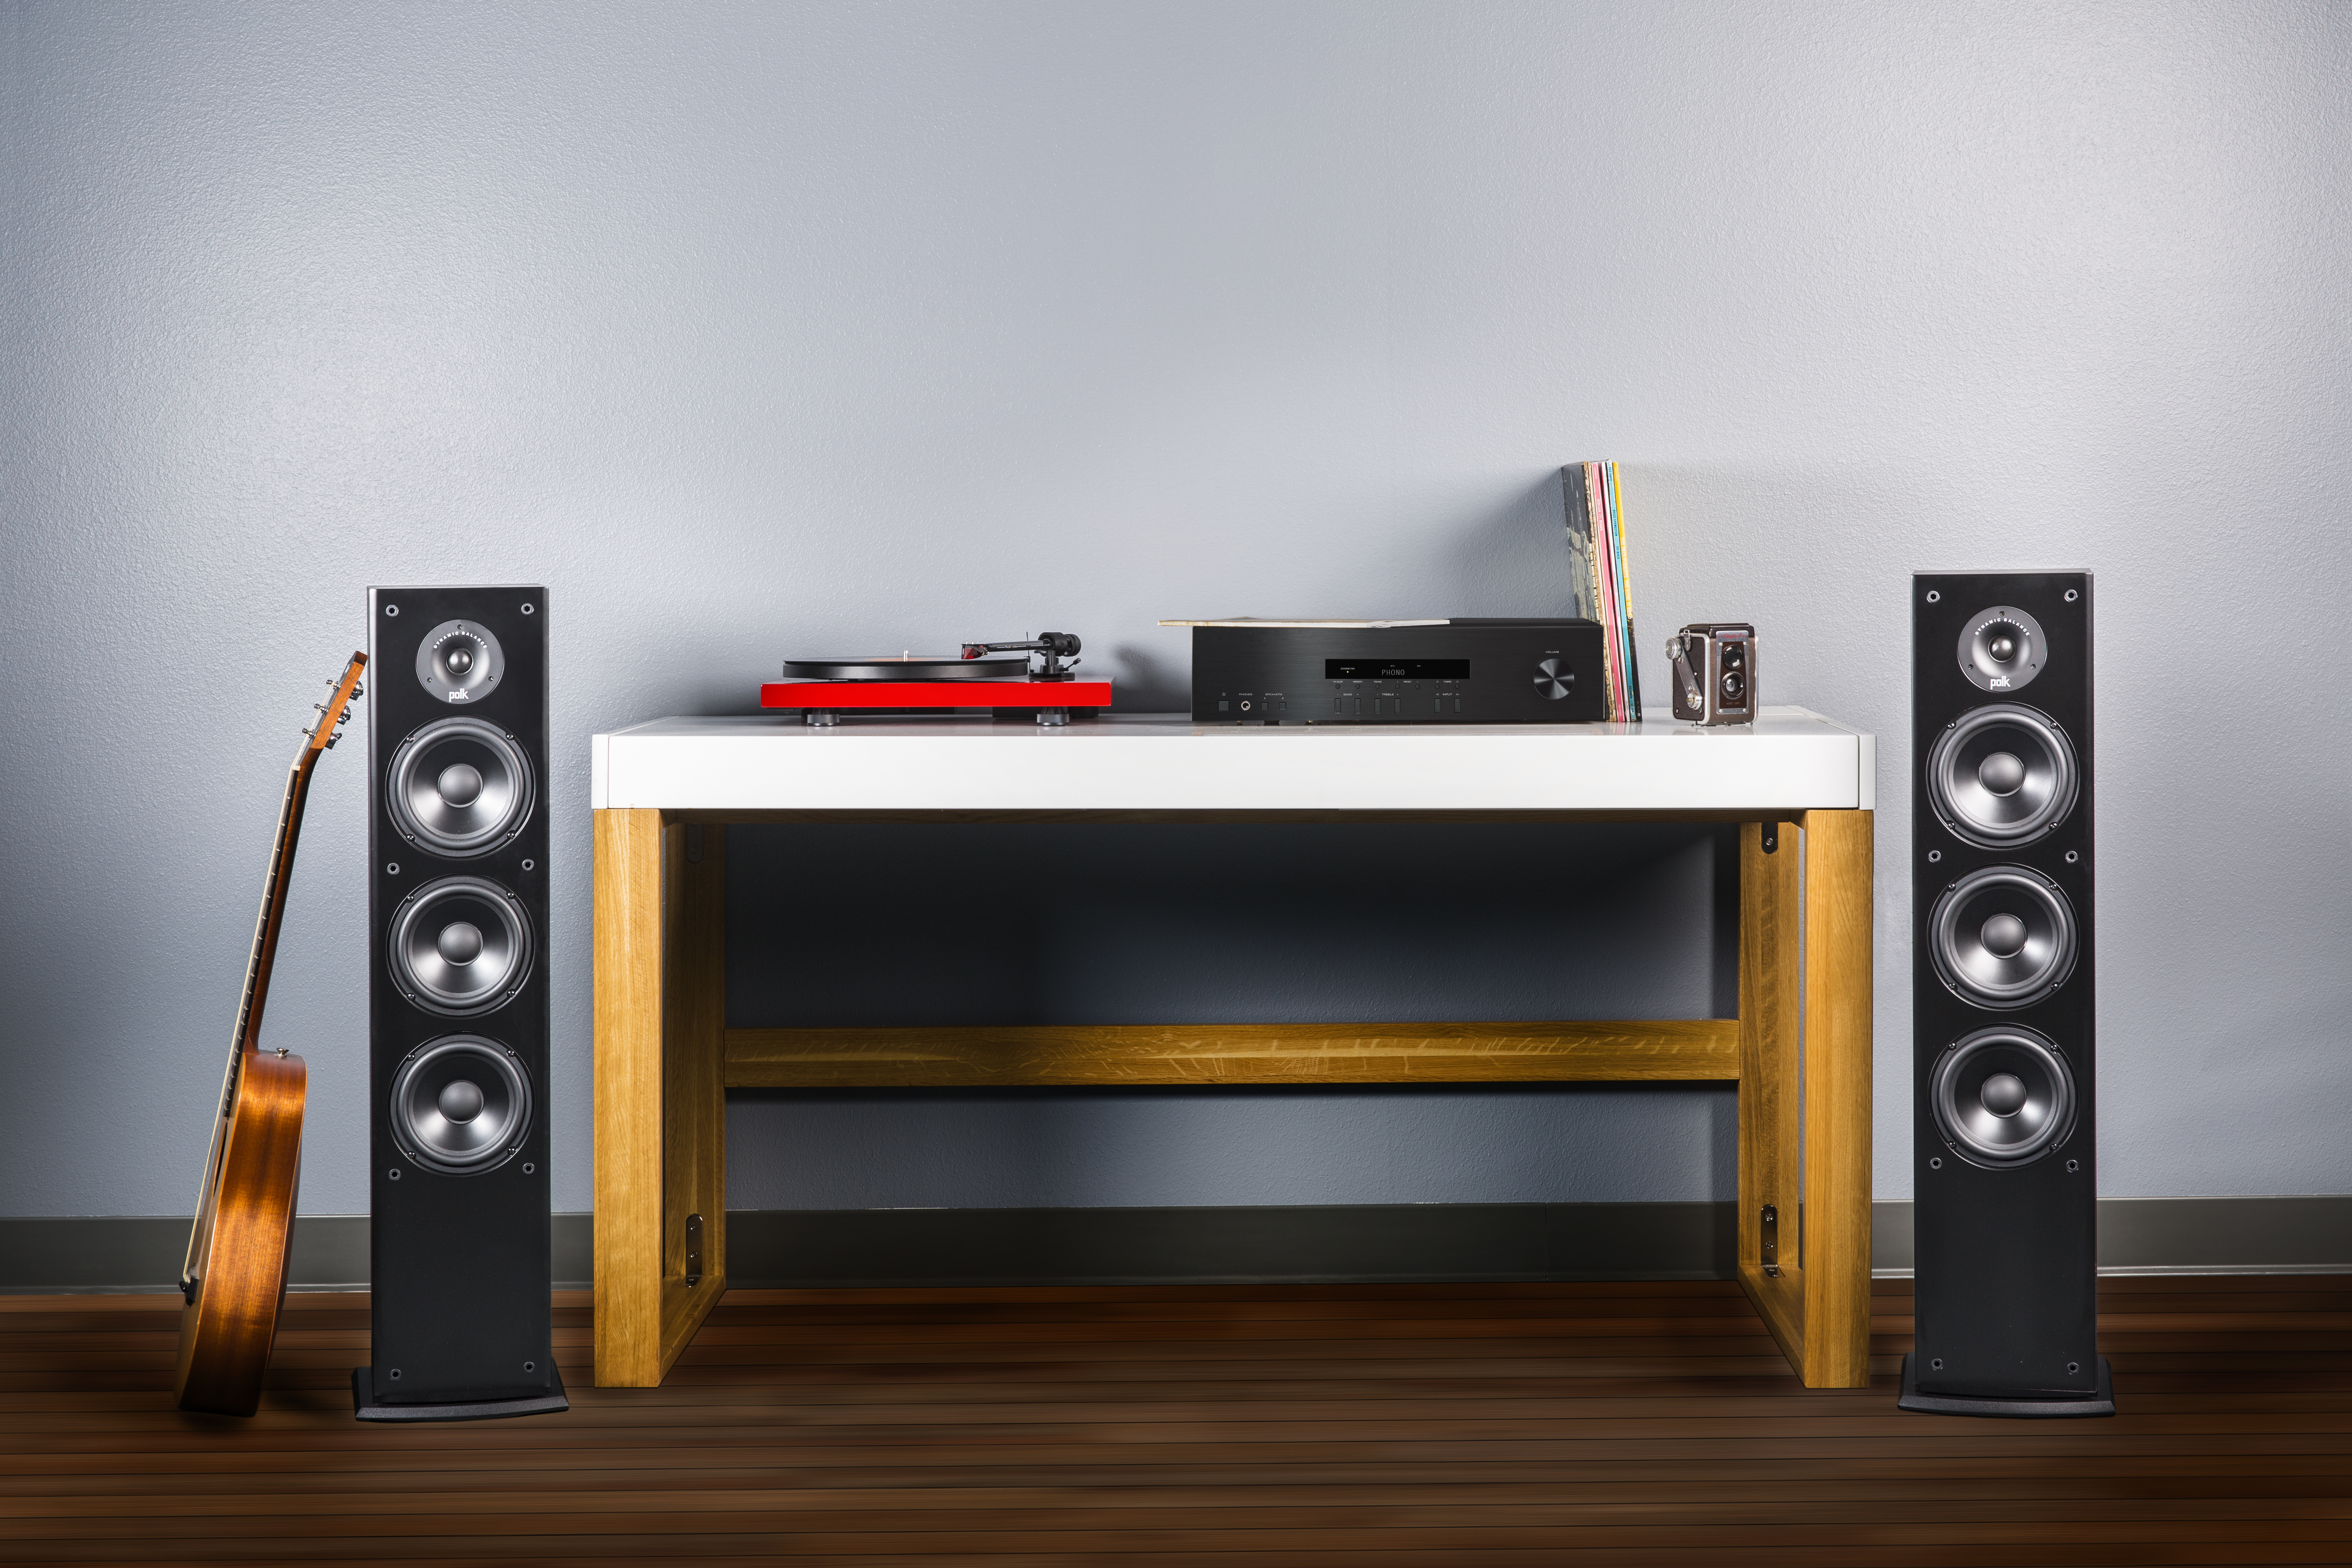 Polk T50 towers